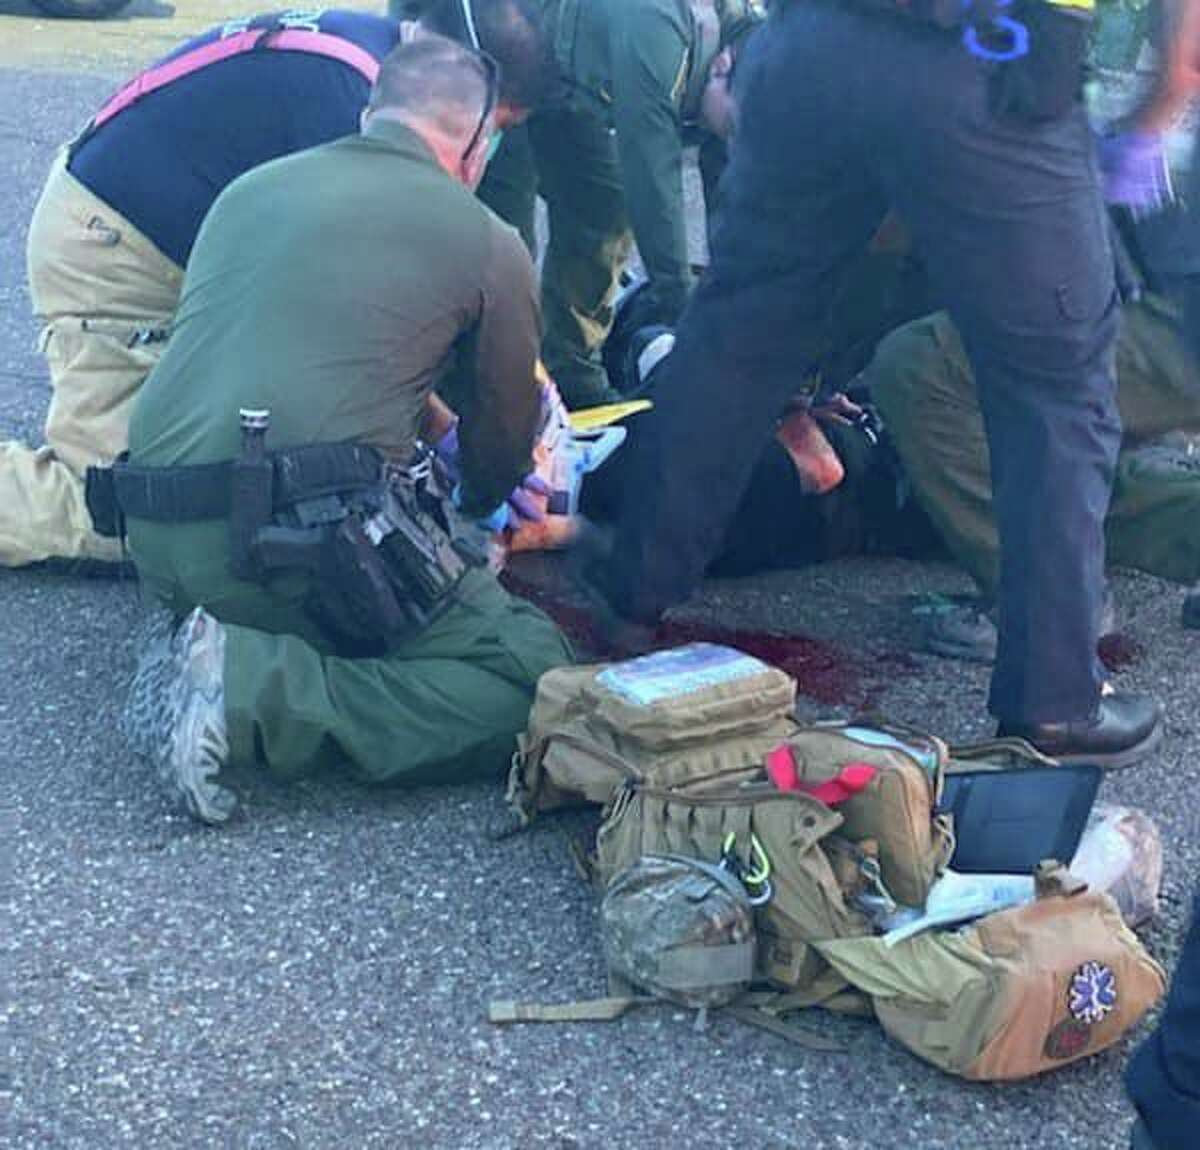 A pair of allegedly intoxicated individuals were found bleeding excessively from their head, according to the USBP.